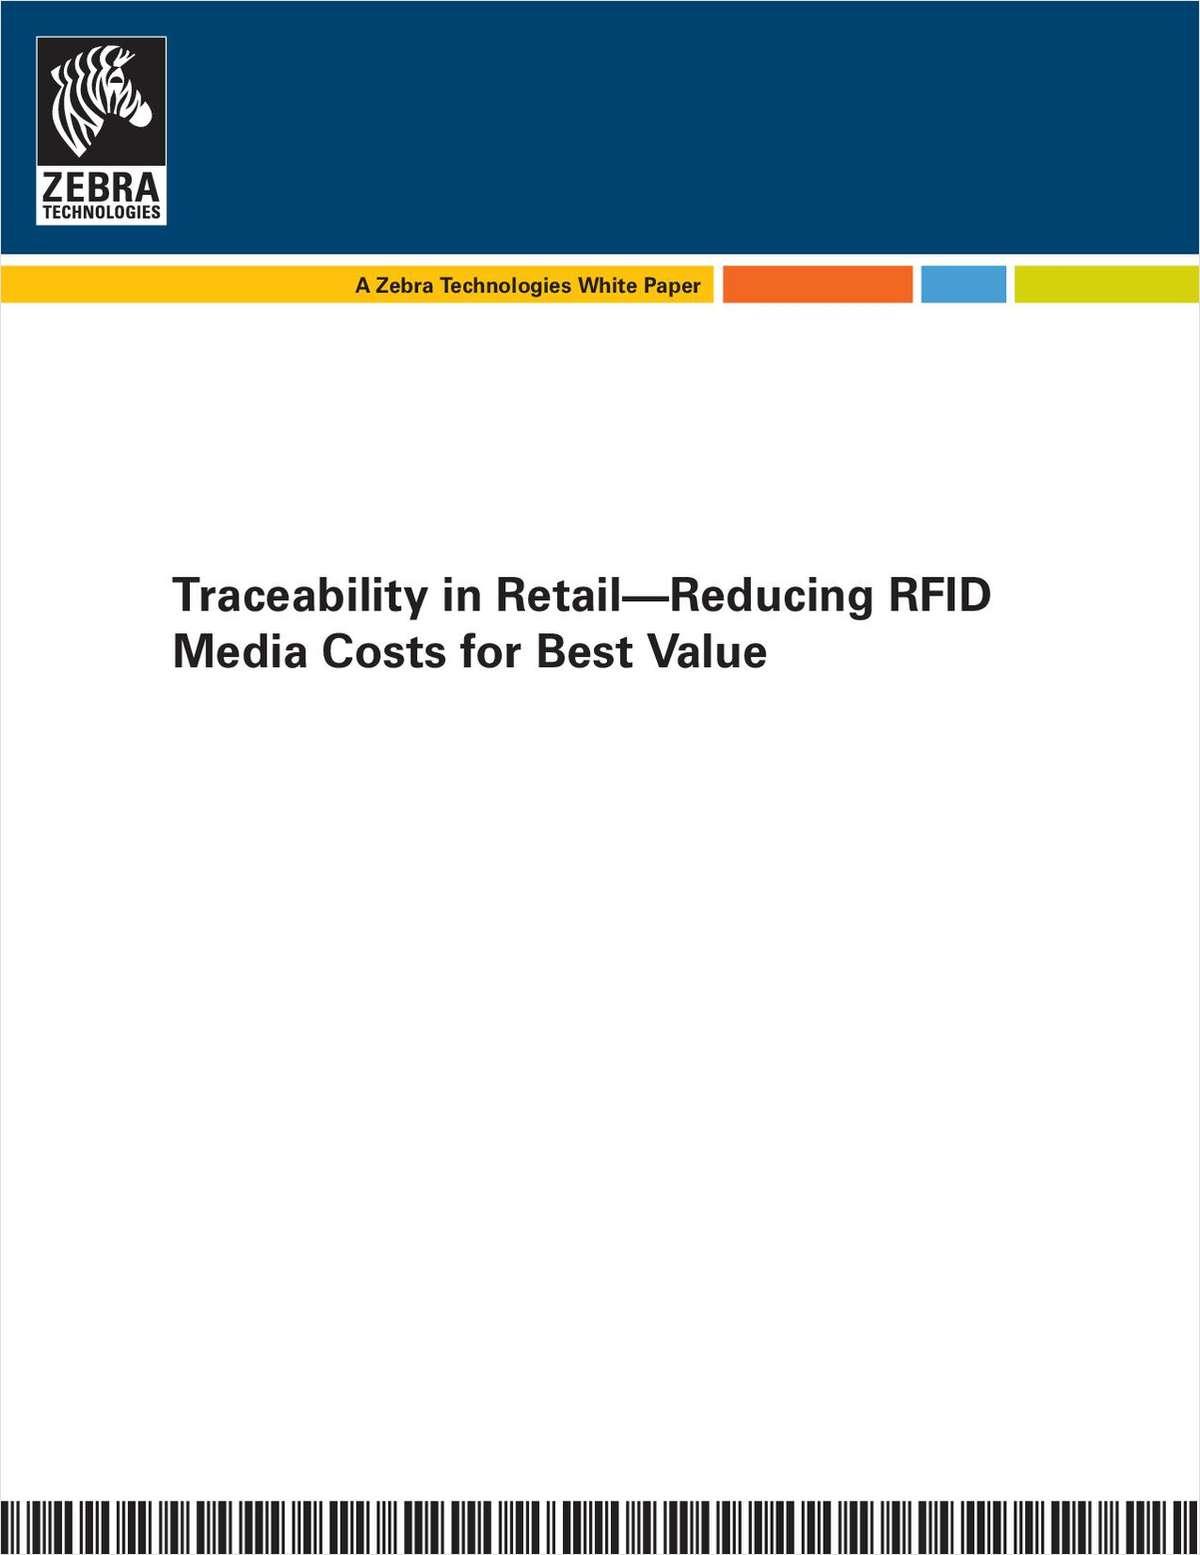 Traceability in Retail--Reducing RFID Media Costs for Best Value